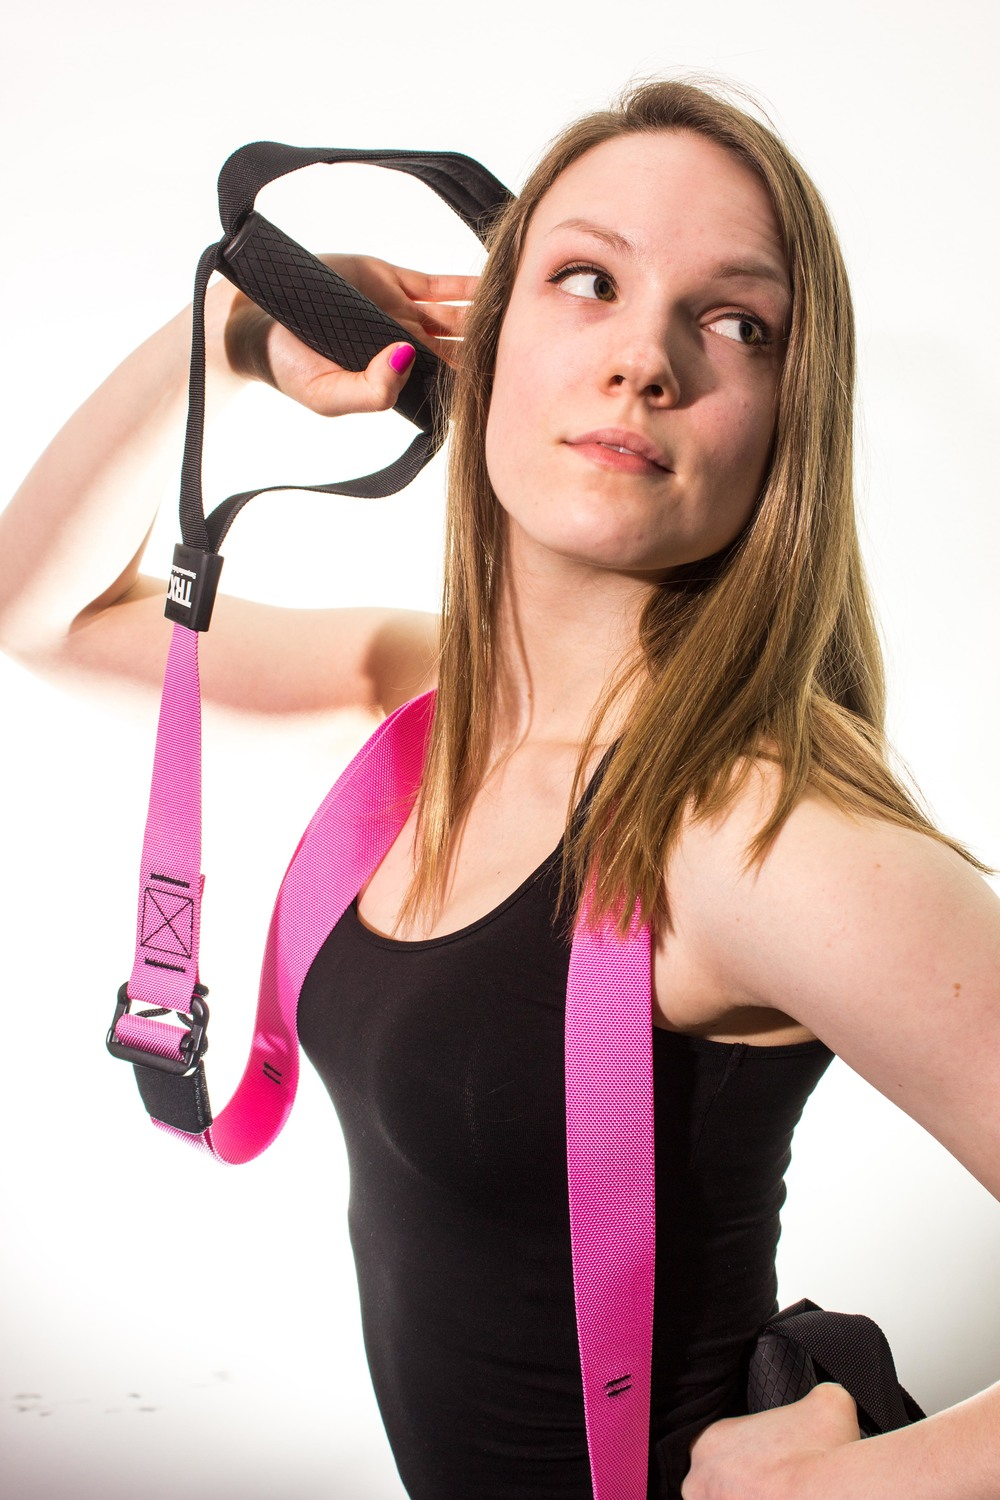 Shannon Kronstadt, Trainer & Instructor at The P.E. Club